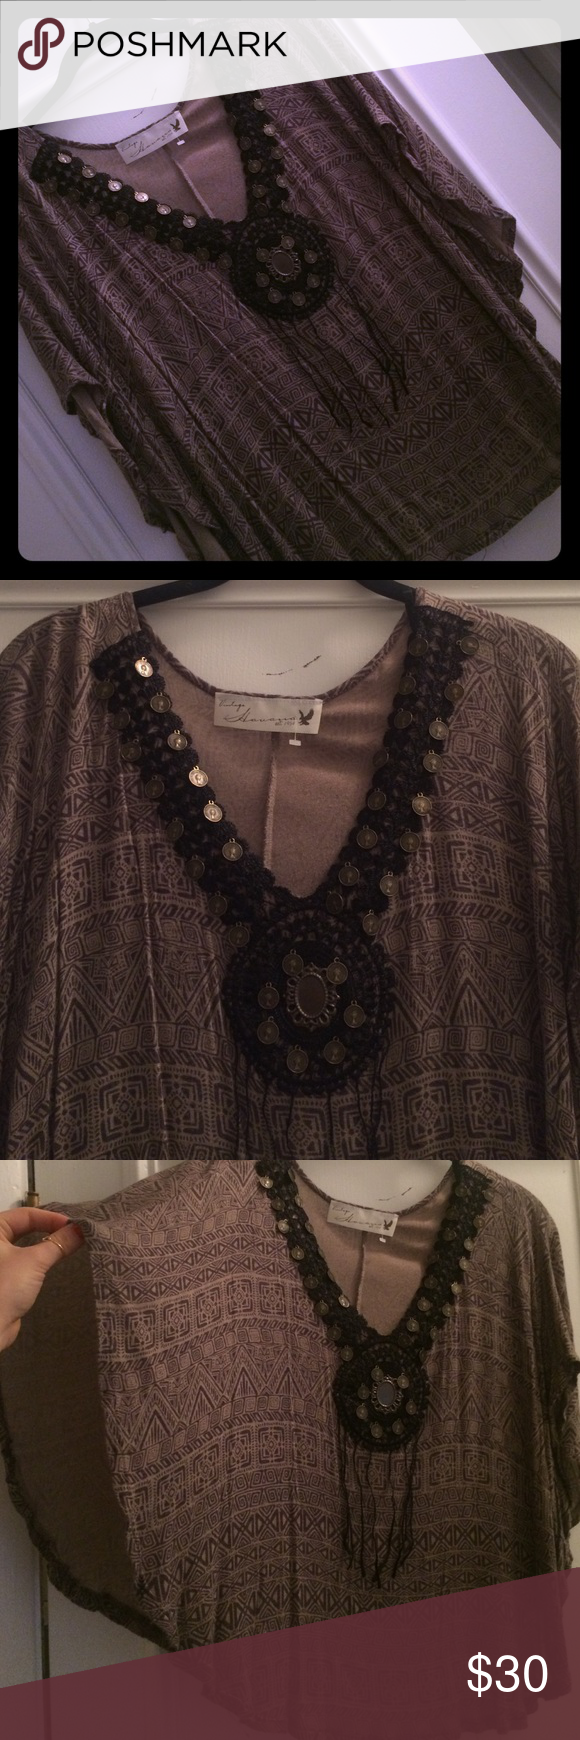 """Poncho shirt This supper unique Aztec/gypsy looking poncho shirt is sure to be a hit any time you wear it. It's so unique and looks great with a little black bralet under it. In great condition, worn only a few times. Since it is open on the sides there is no real size but I would say small/medium. It looks free people but I believe I got it from Nordstrom or a botique, tag says """"vintage Havana"""" Vintage Havana Tops Blouses"""